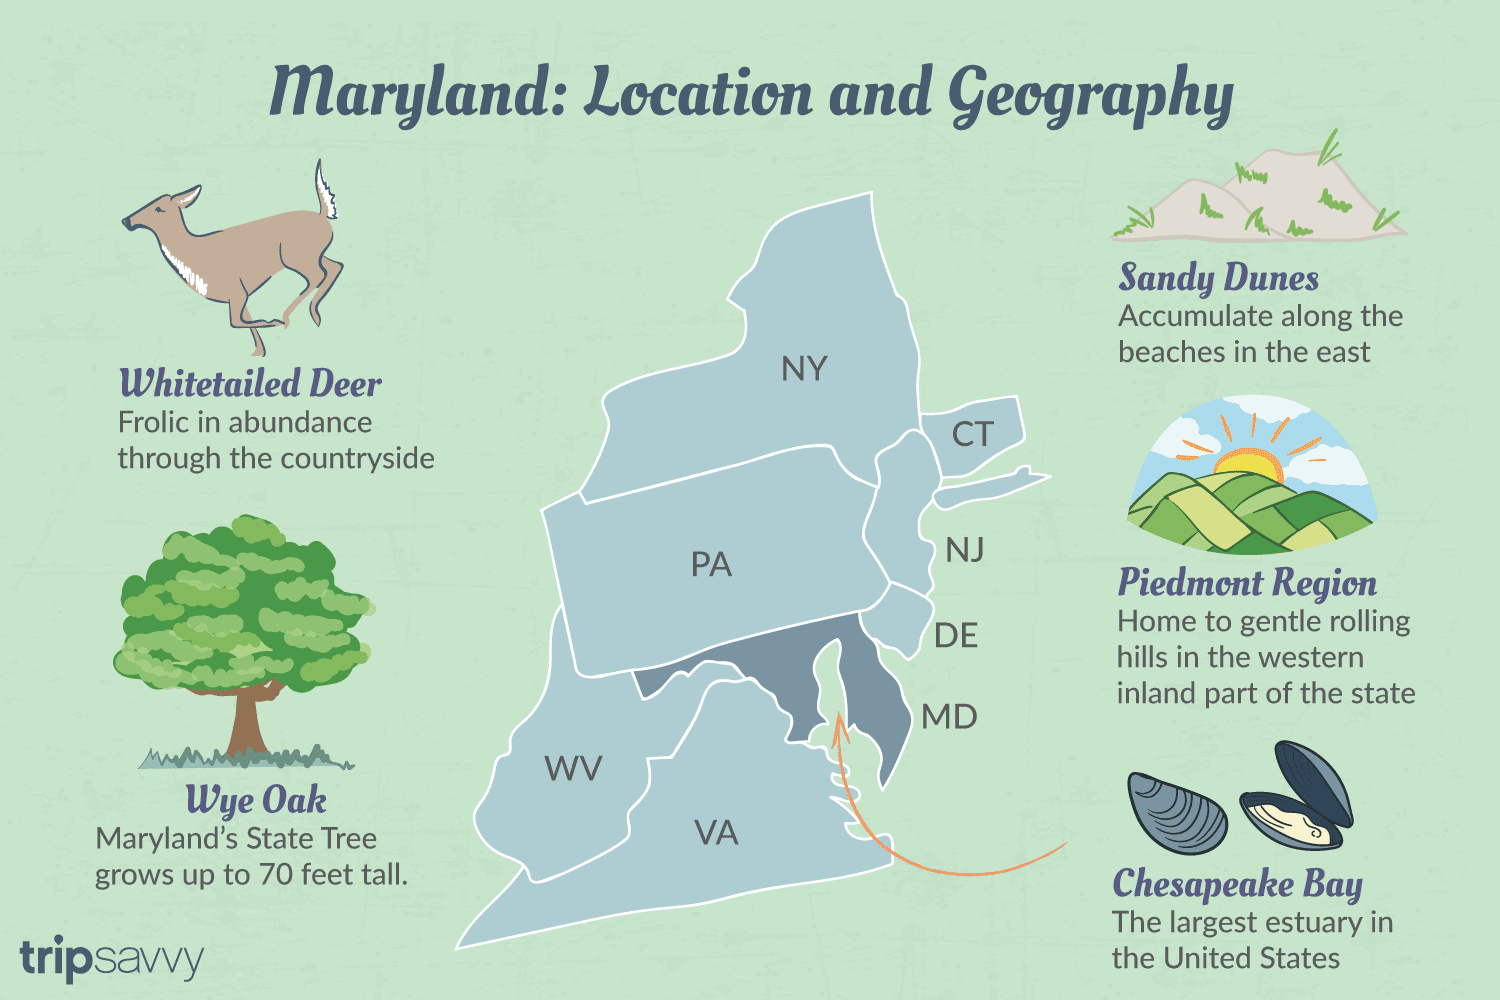 Where Is Maryland? Map, Location and Geography